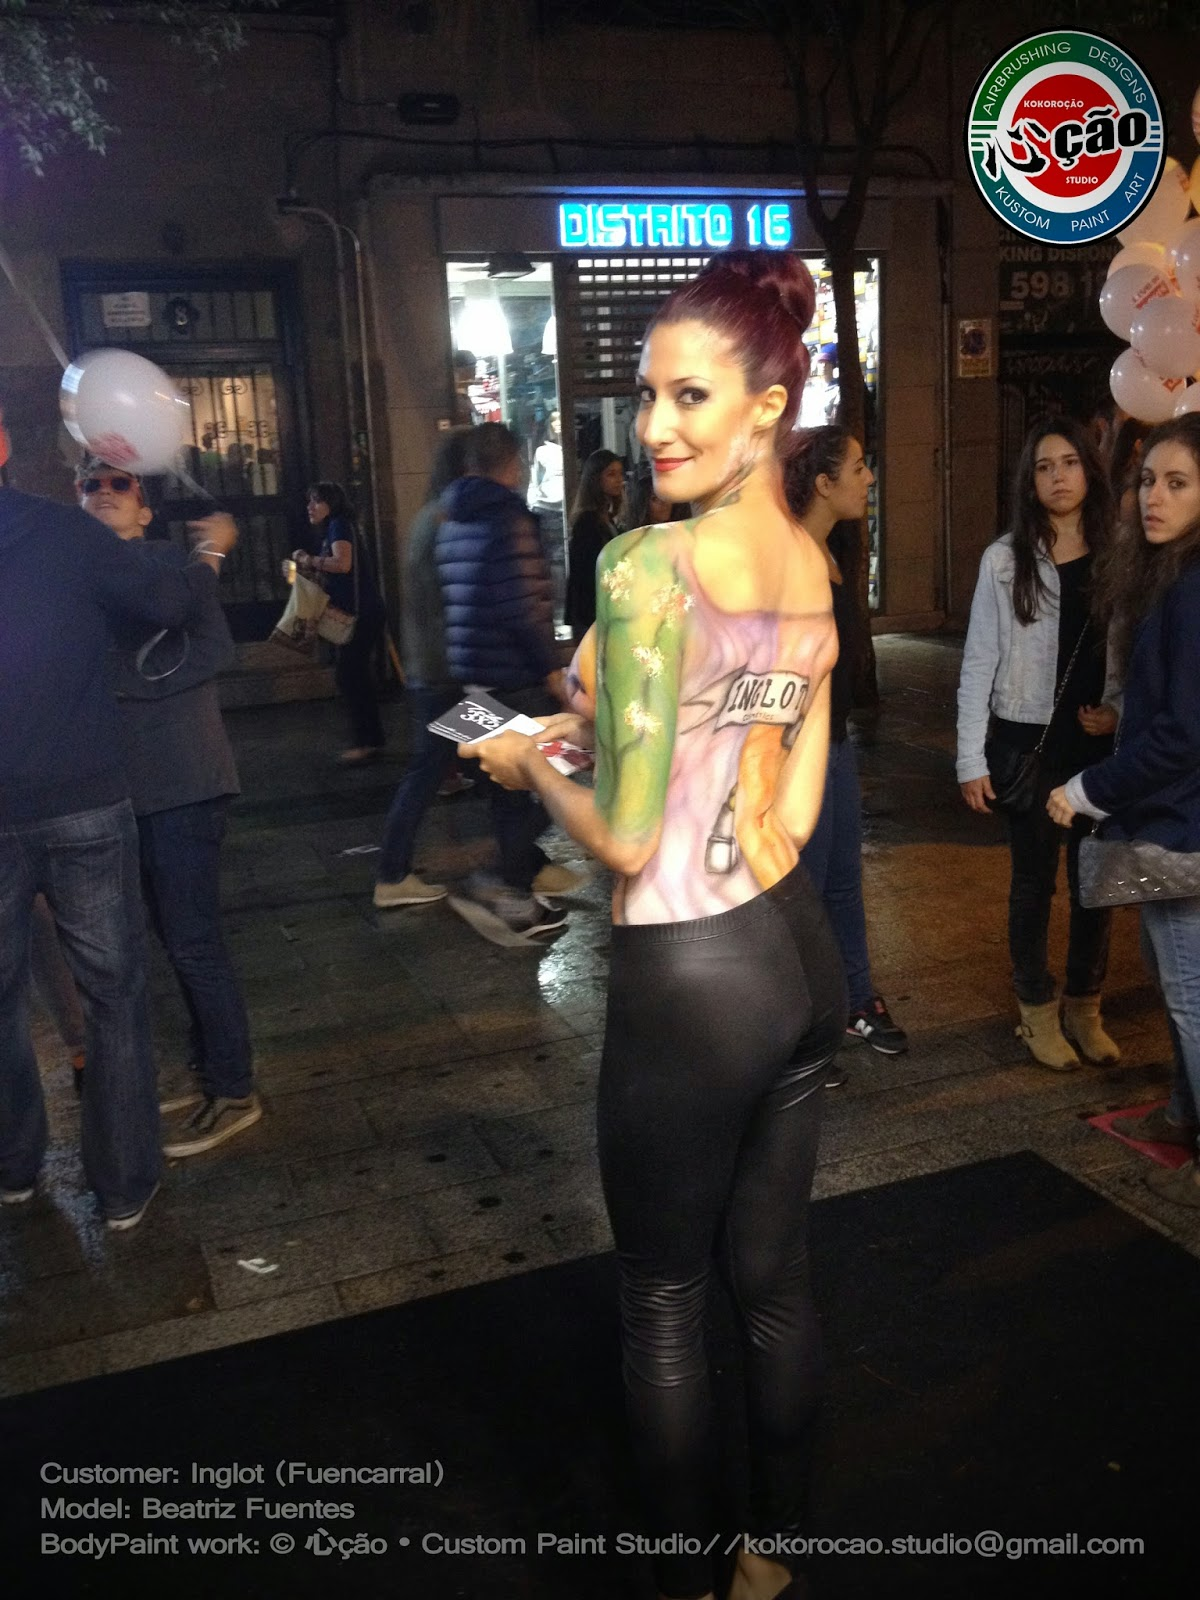 BODY PAINT PARA INGLOT COSMETIC (EVENTO: VOGUE FASHION NIGHT OUT)